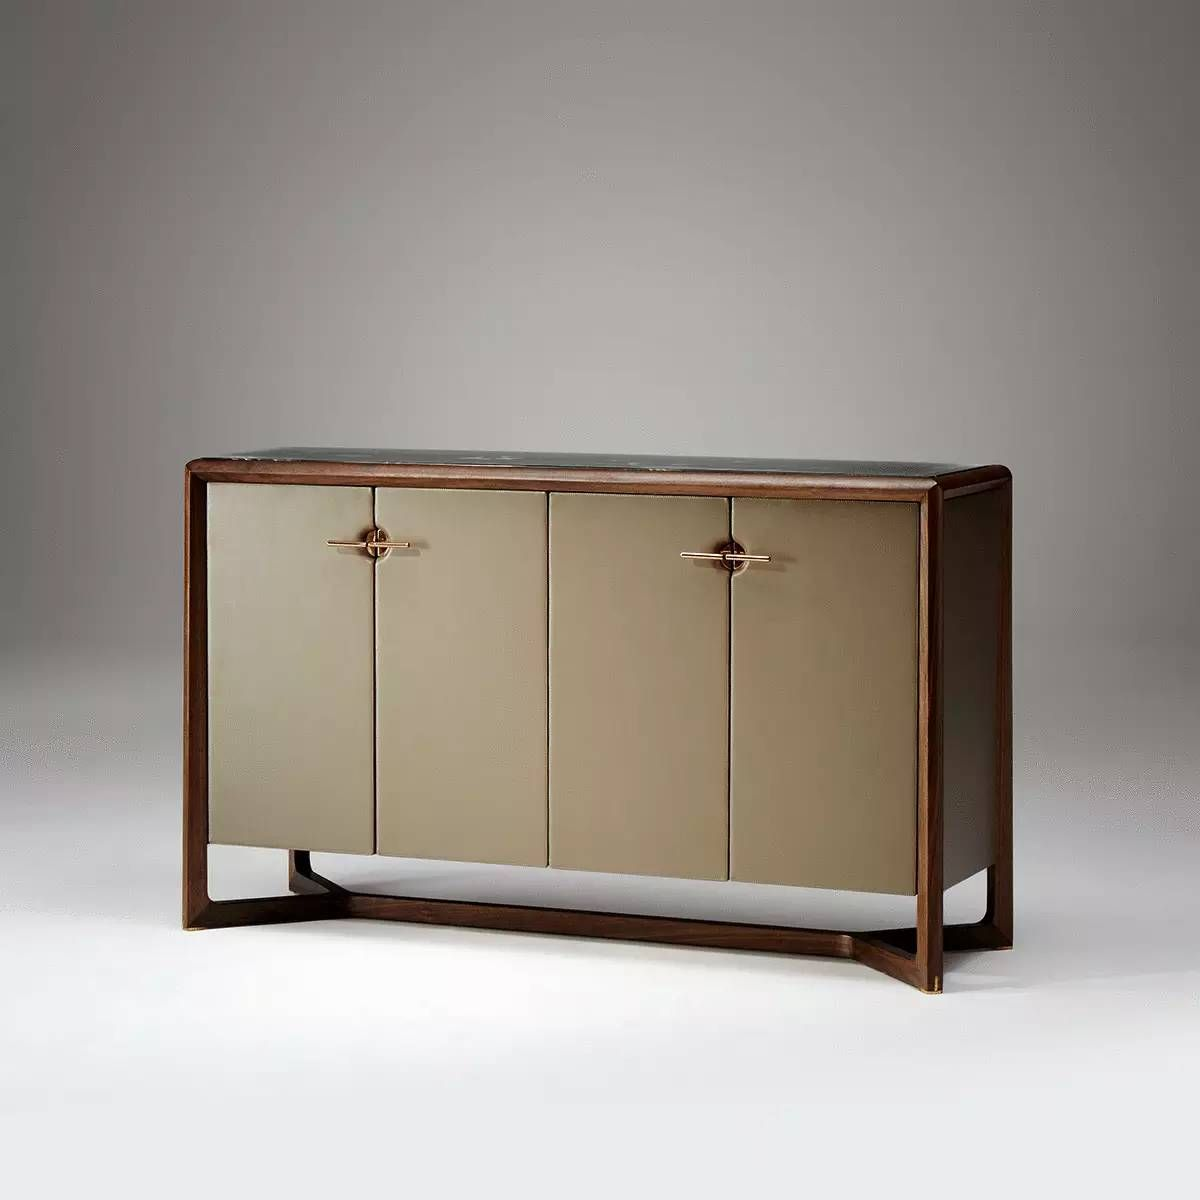 Sideboard Modern Design Luxury Sideboard Modern Design For A Luxury Decor